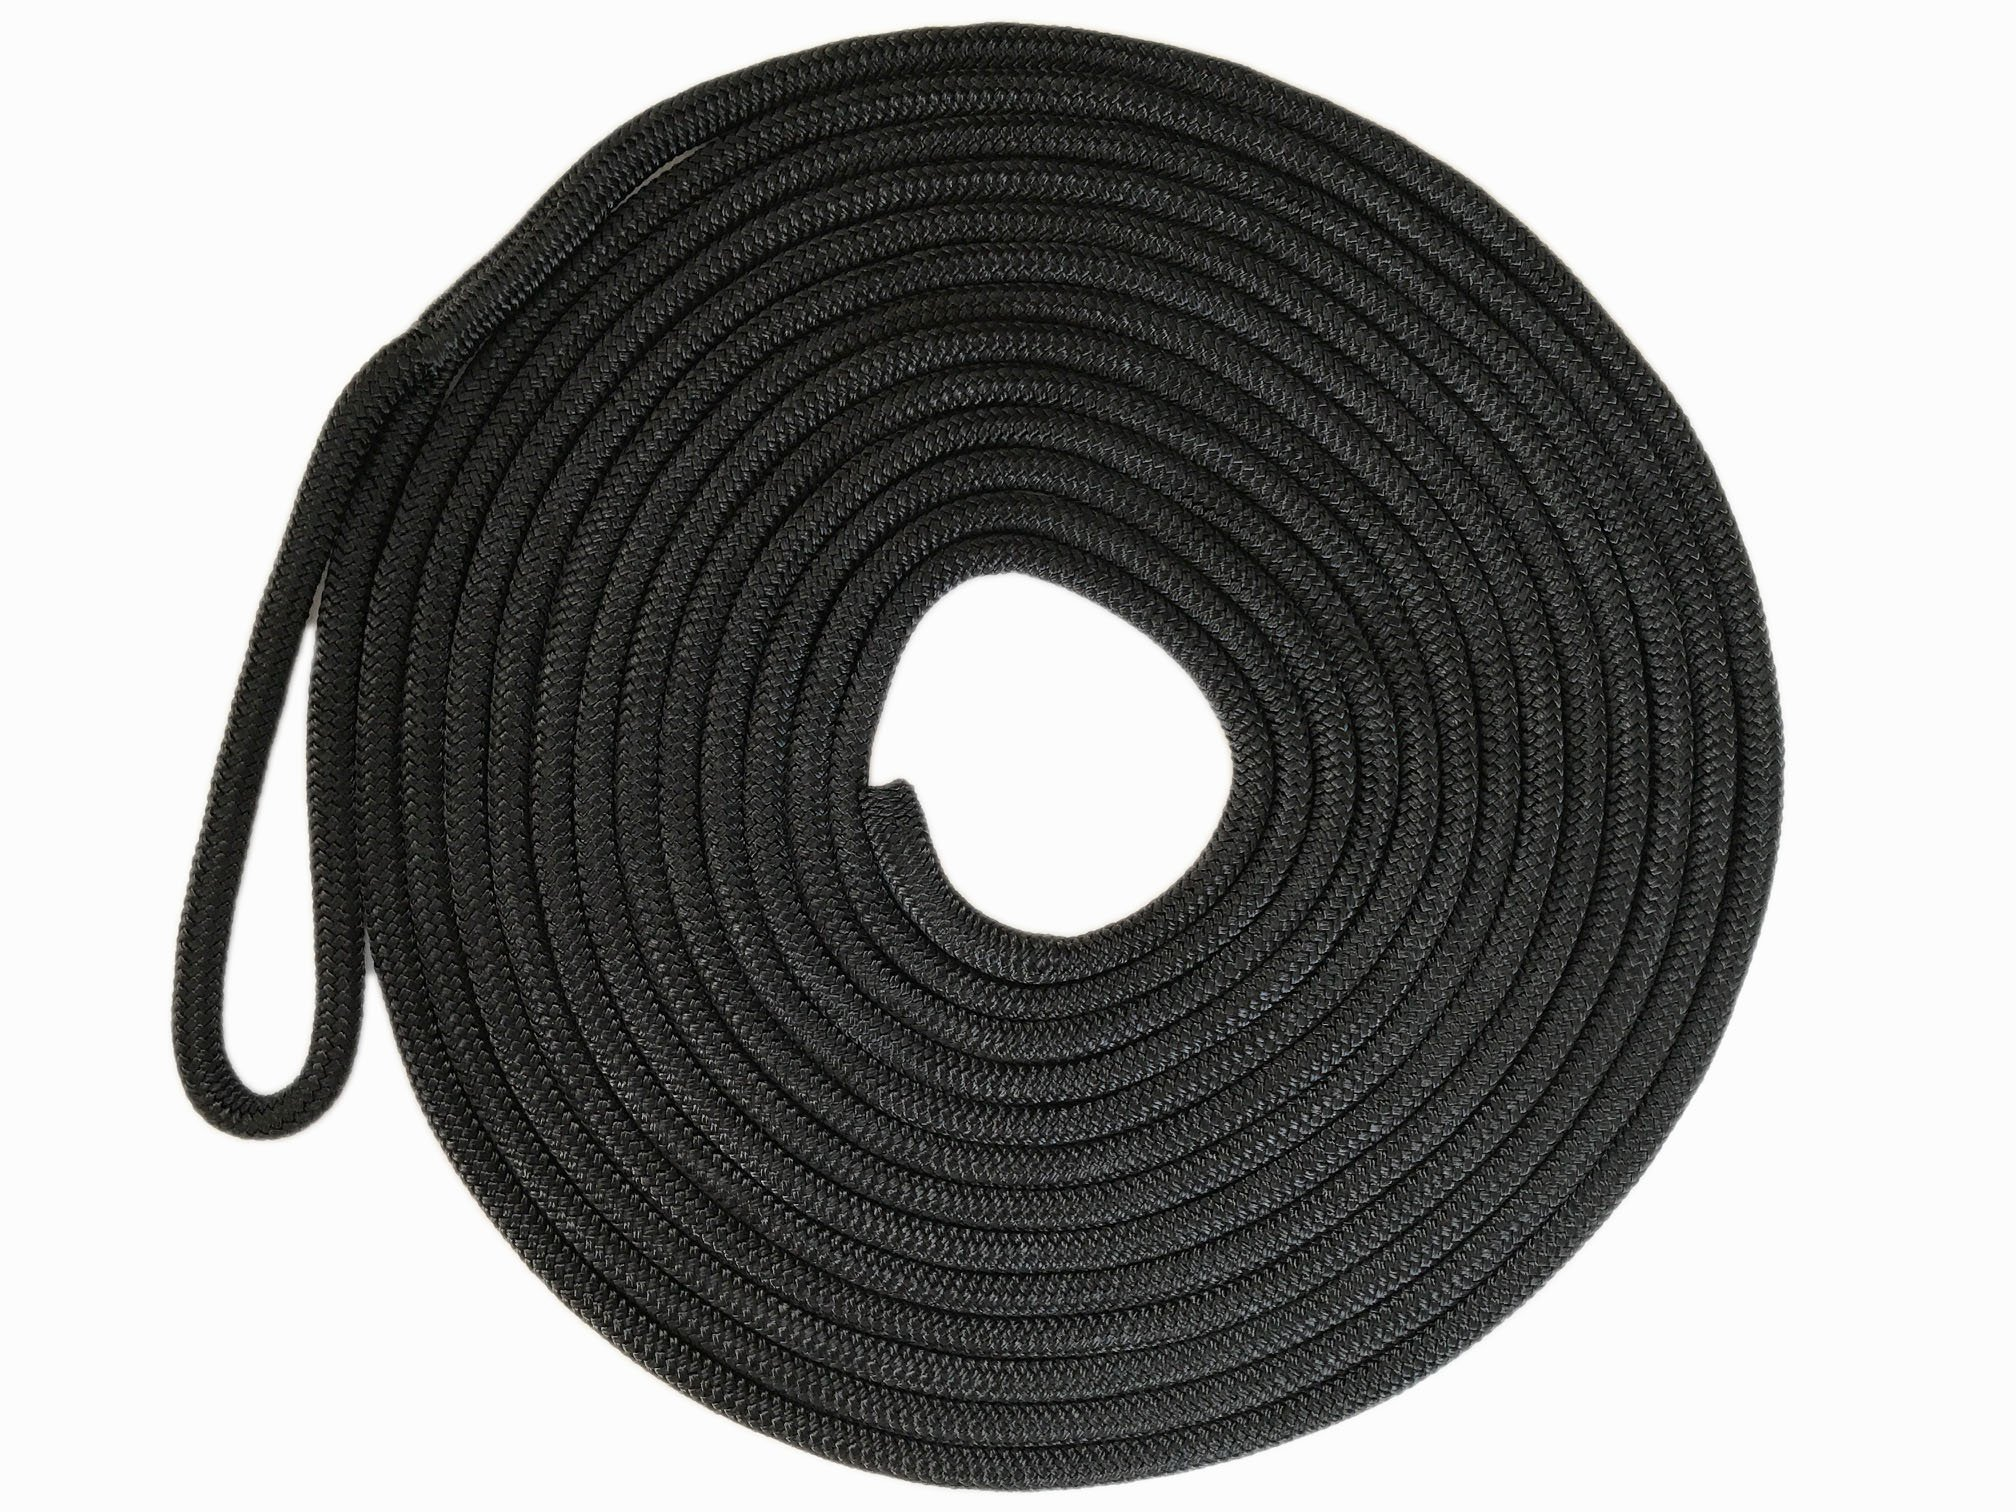 Knotty Girlz 5/8'' Double Braid Nylon Dock Line Yacht Rope or Mooring Line 100ft, 50ft, 25ft. or 15ft. Overall Length with Eye Spliced Loop (Black, 15ft.)